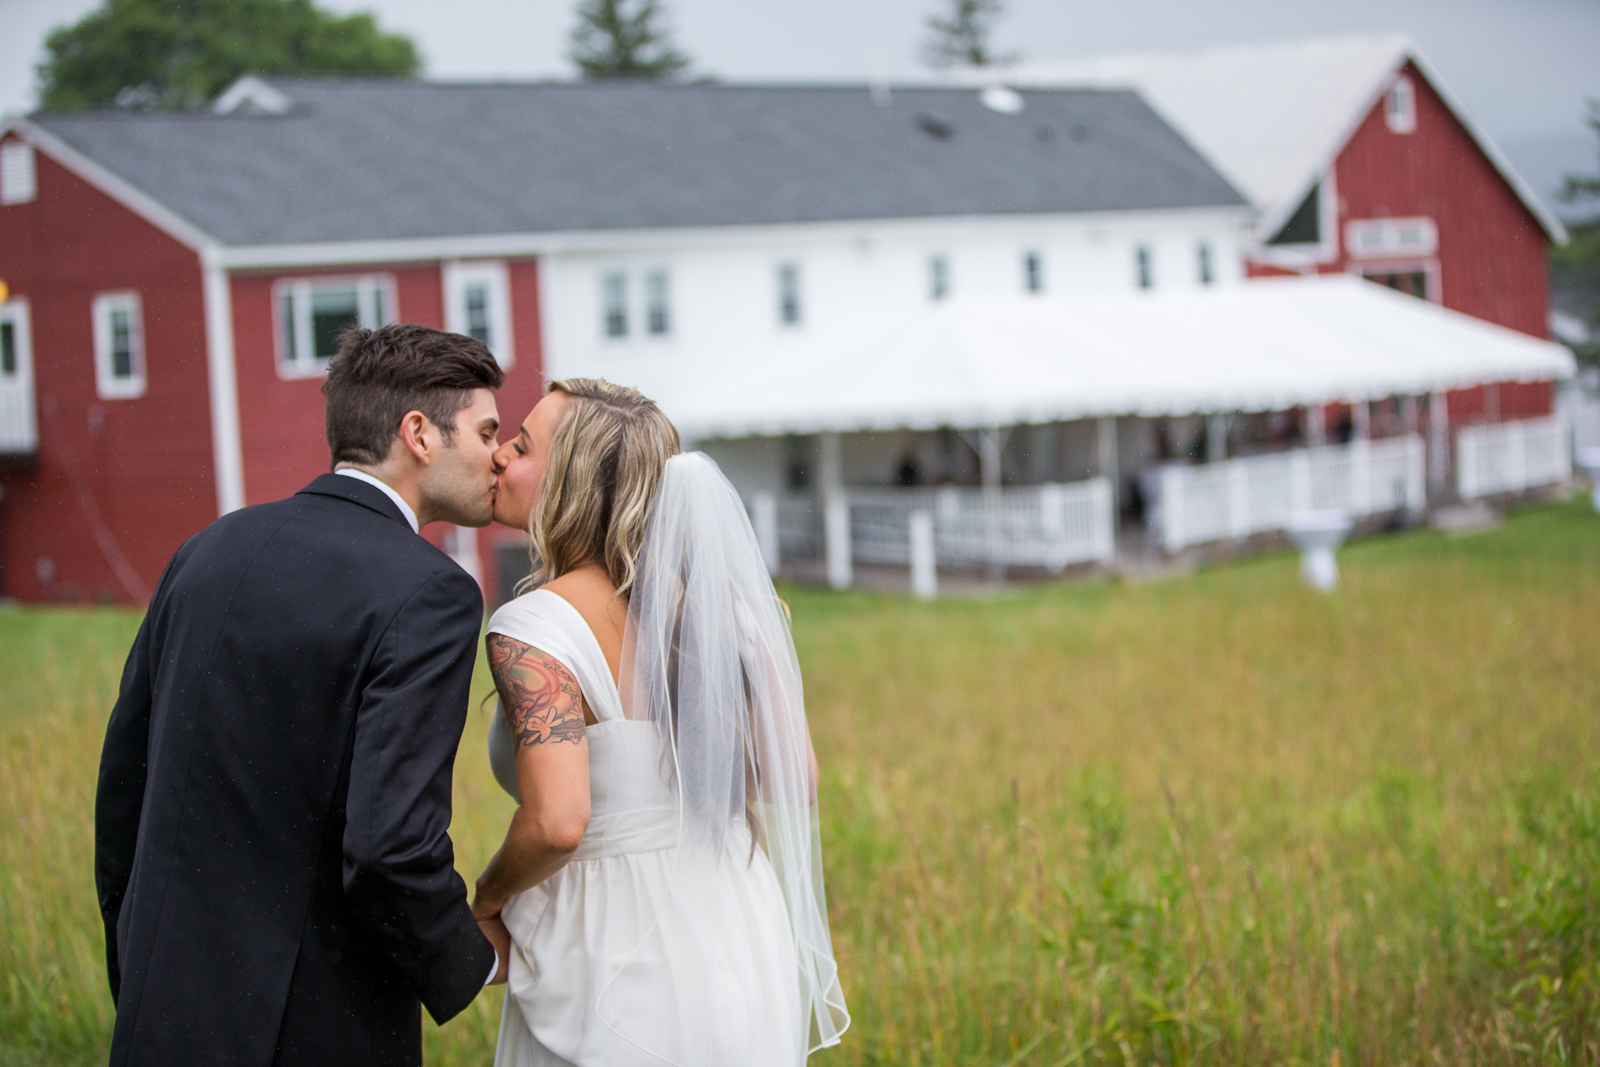 Four_Wings_Photography_Wedding_Red_Barn_at_Hampshire_College-31.jpg